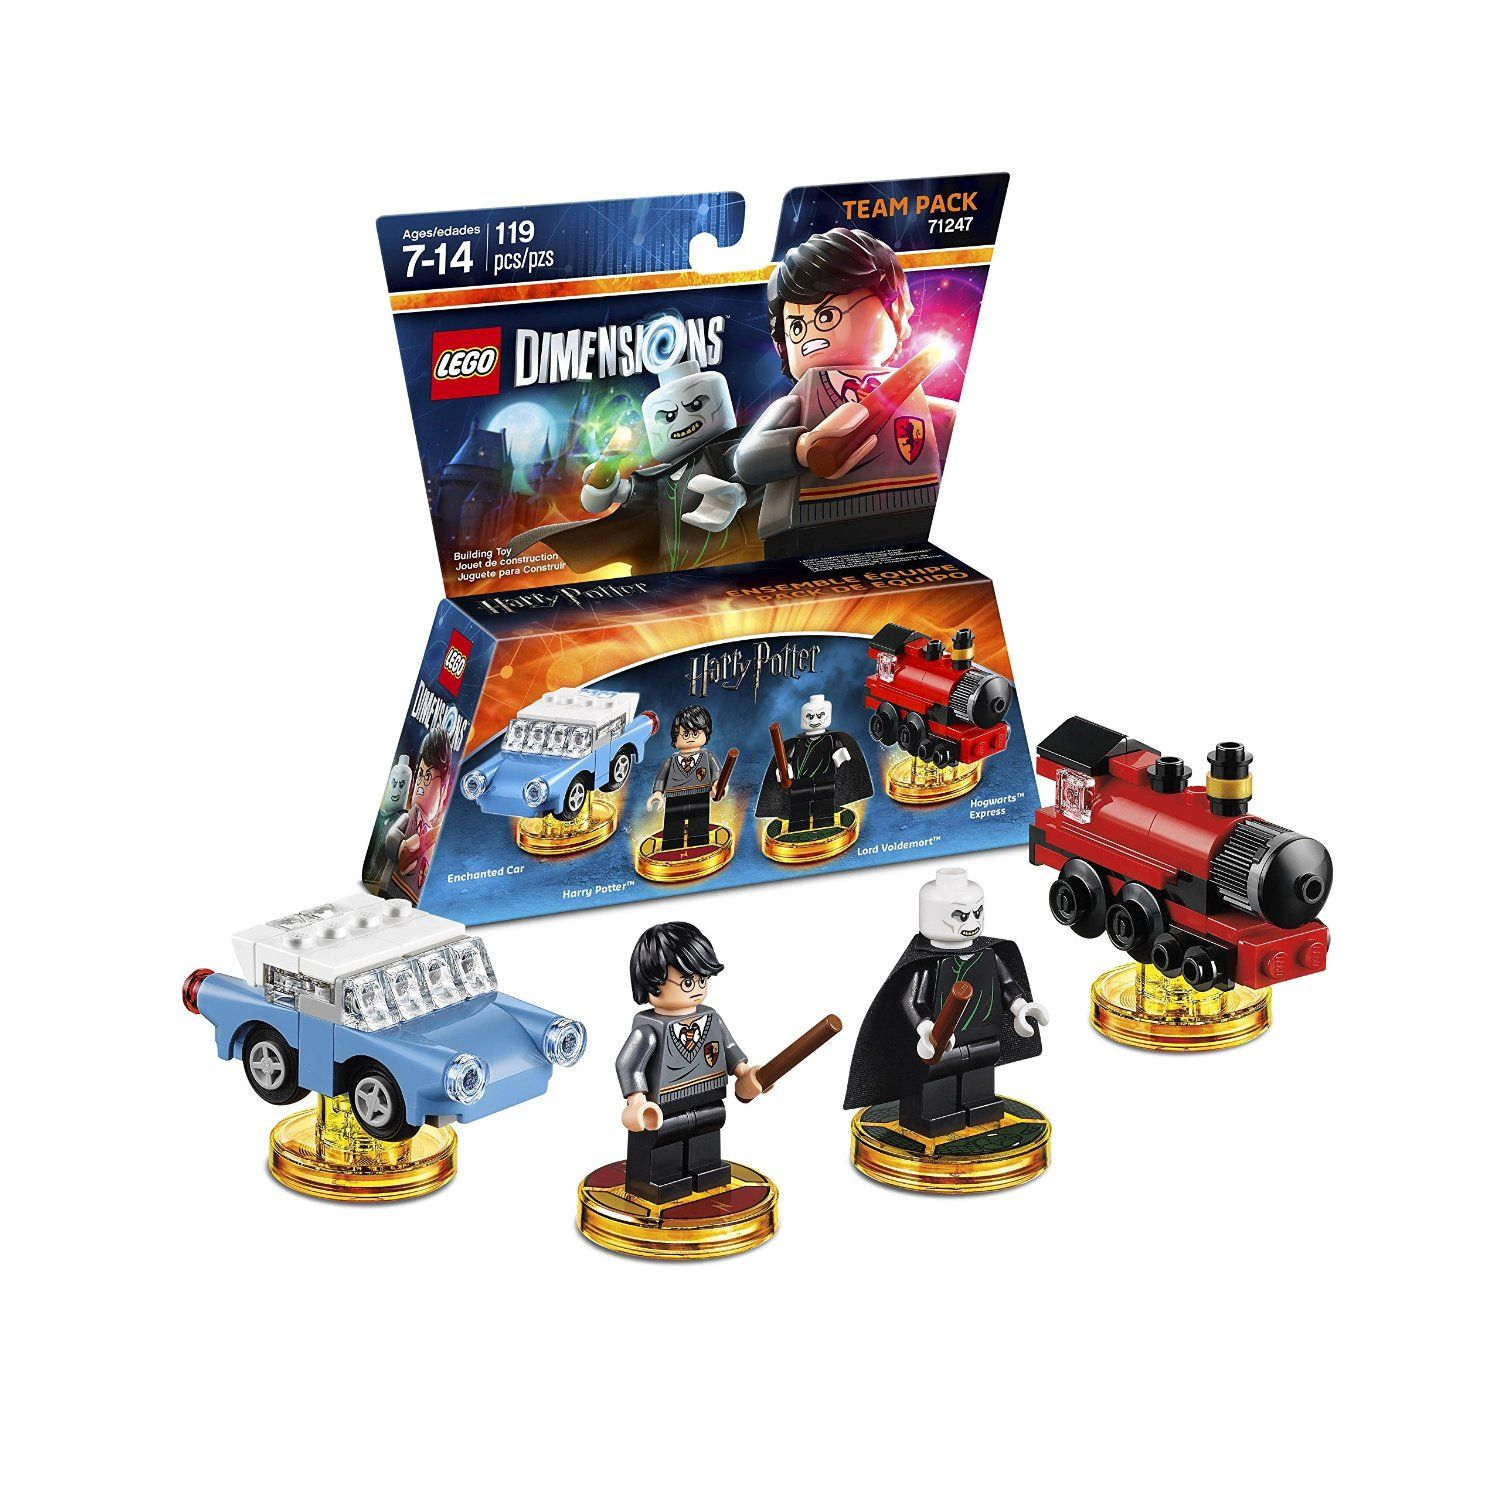 2bb343c12b63ac68dee81b991d4f0d47 lego dimensions, harry potter team pack s www amazon com LEGO Dimensions Xbox One at edmiracle.co